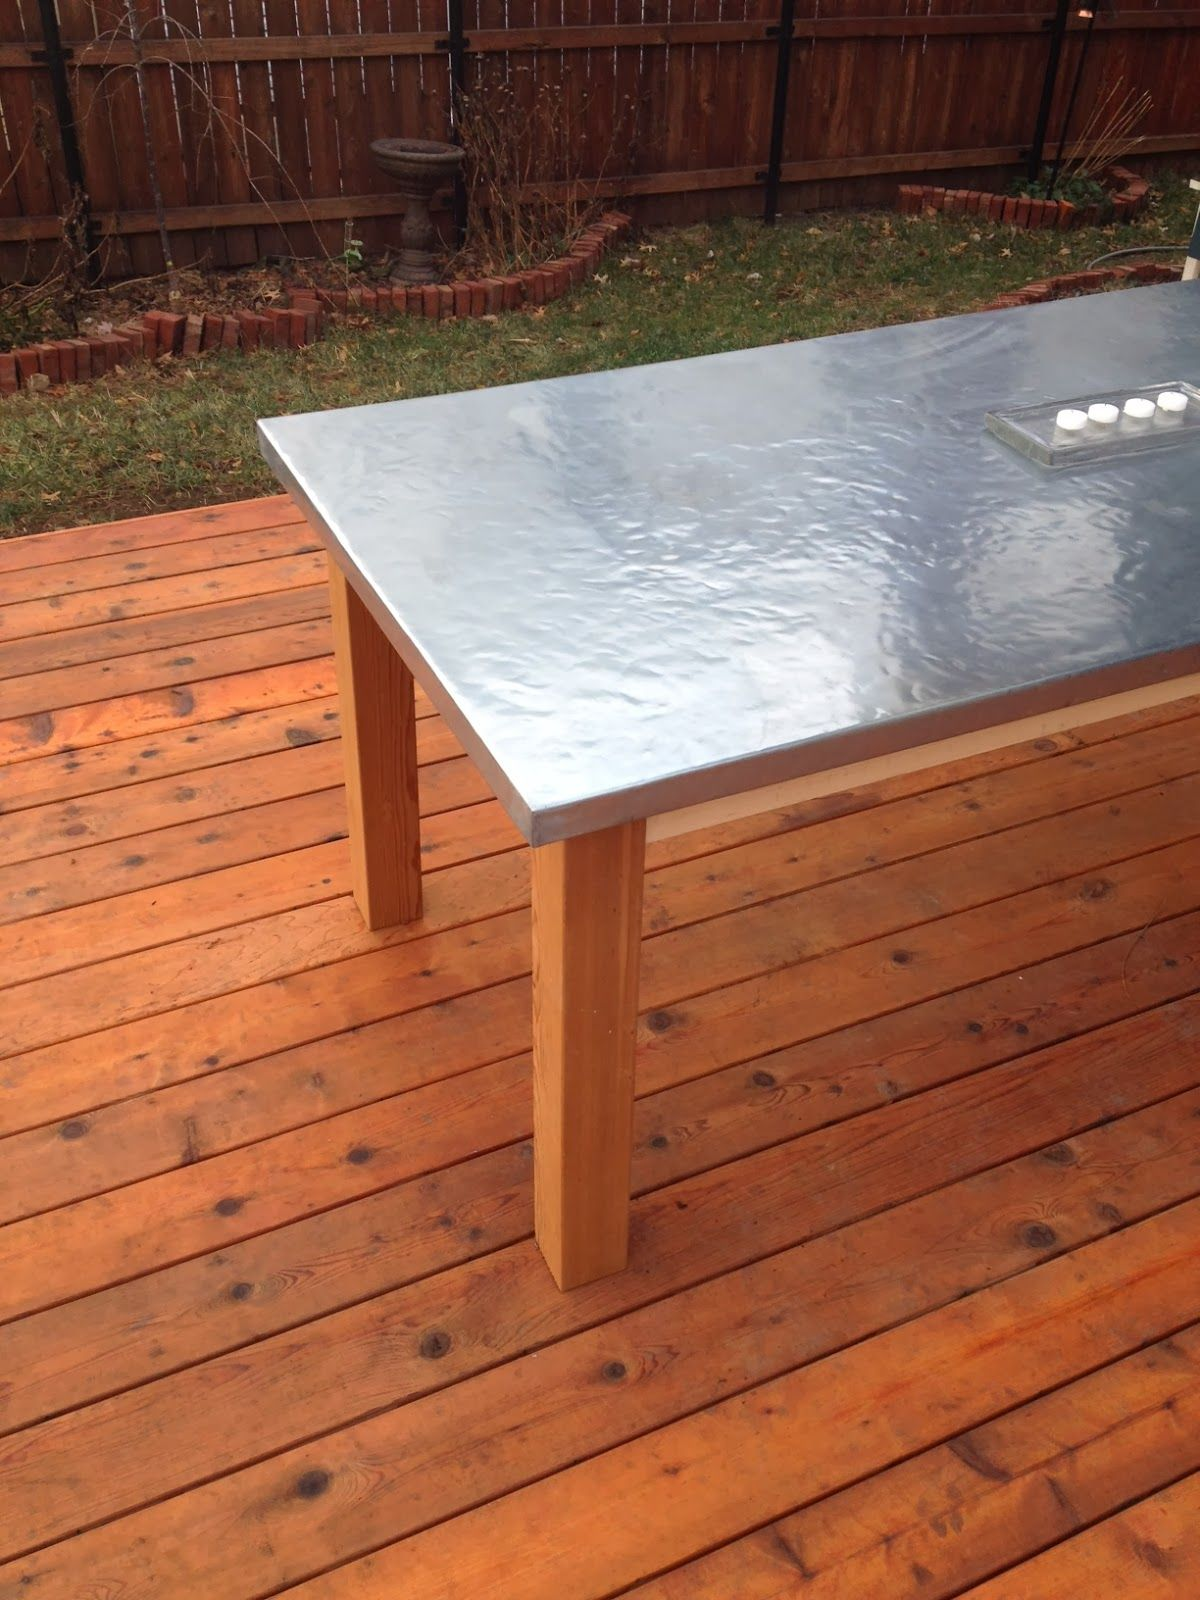 How To Make A Diy Outdoor Zinc Table Diy Outdoor Table Zinc Table Outdoor Table Tops